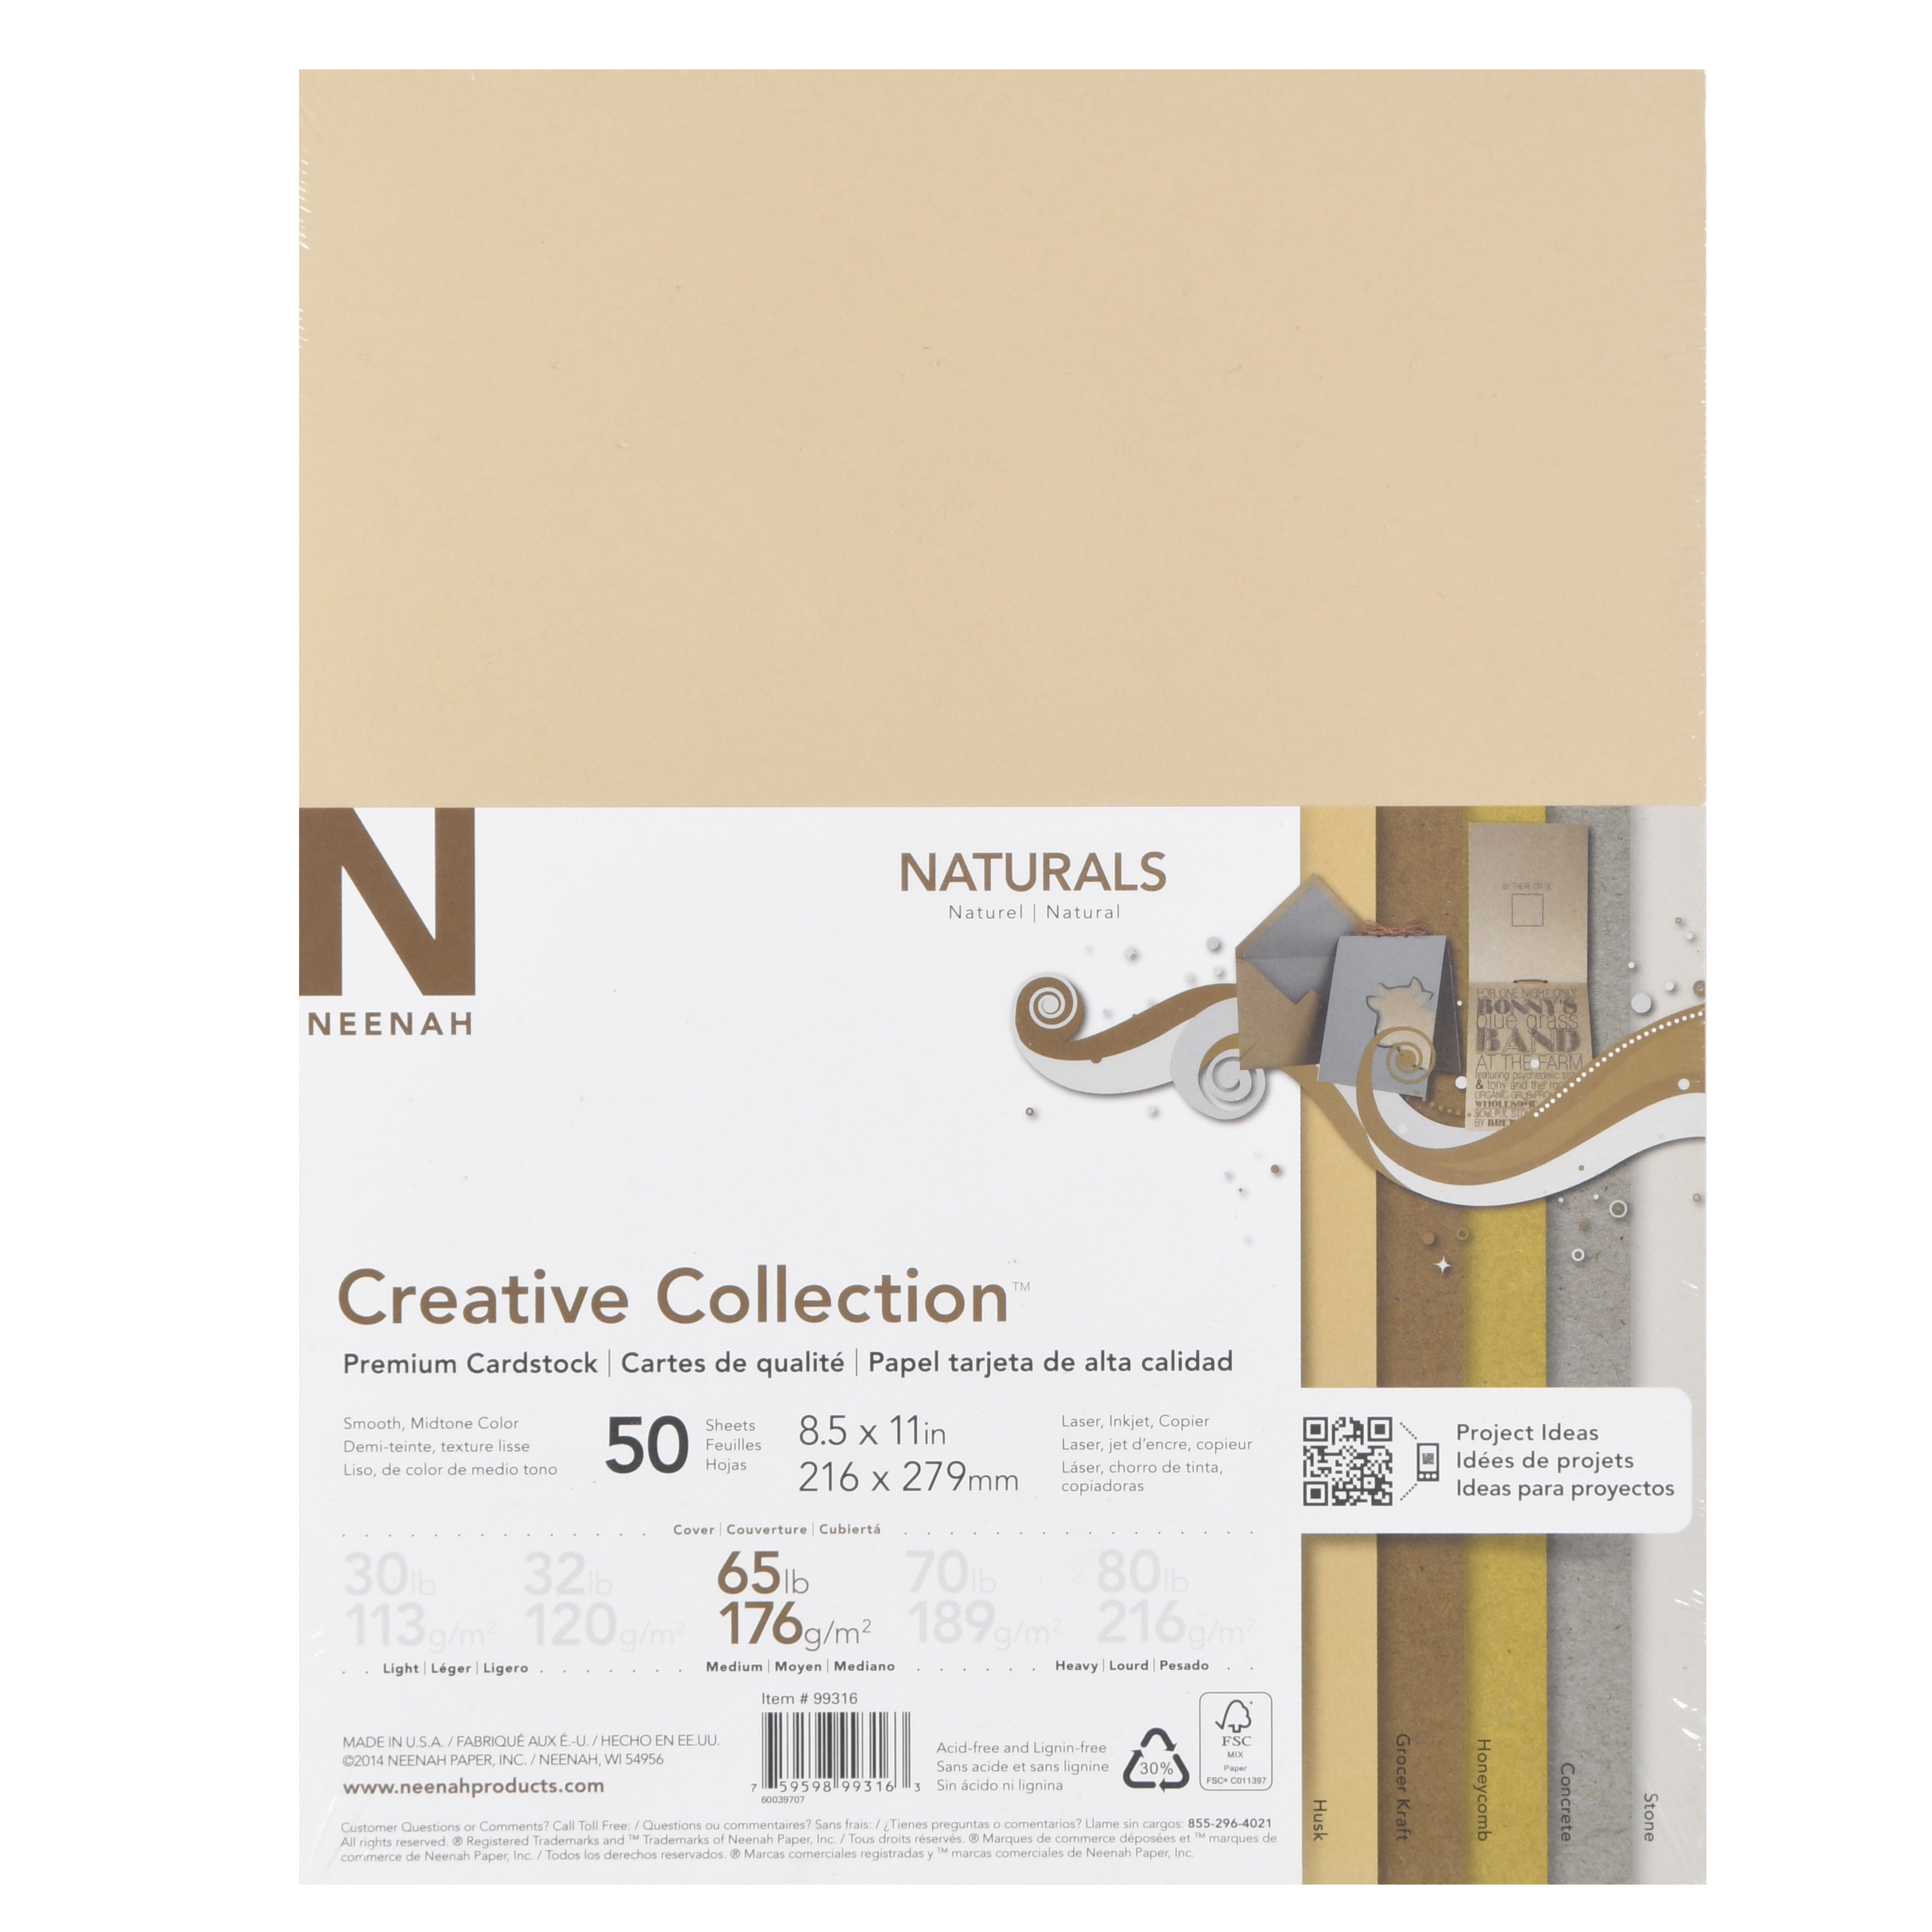 "Neenah Creative Collection Natural Specialty Cardstock, 8.5"" x 11"", 65 lb., 5-Color Assortment, 50 Sheets"